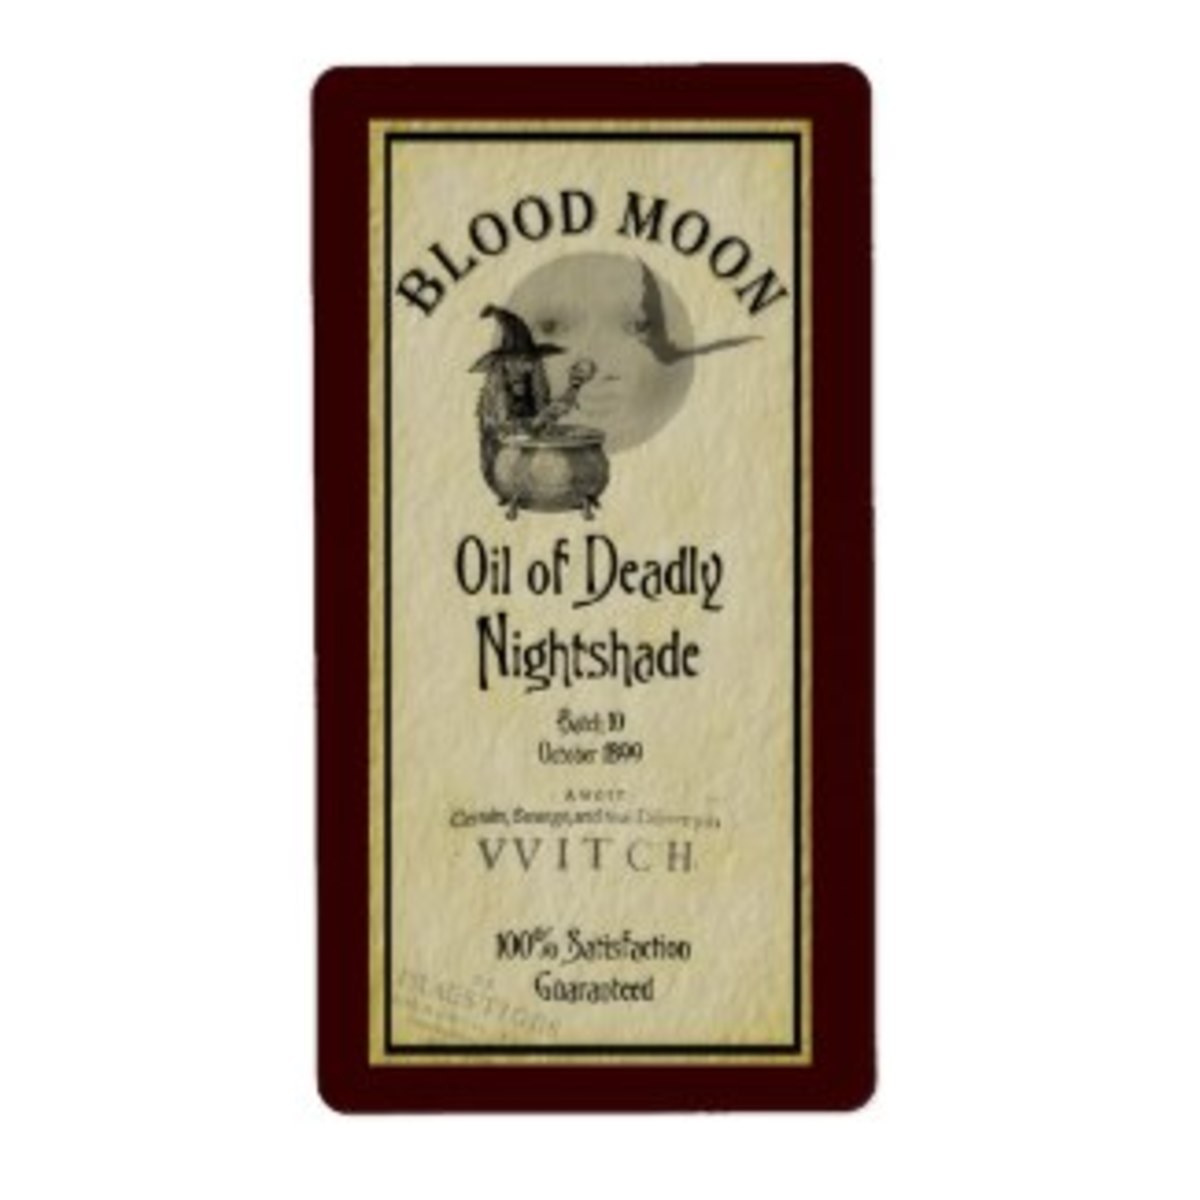 Blood Moon Label Oil of Deadly Nightshade